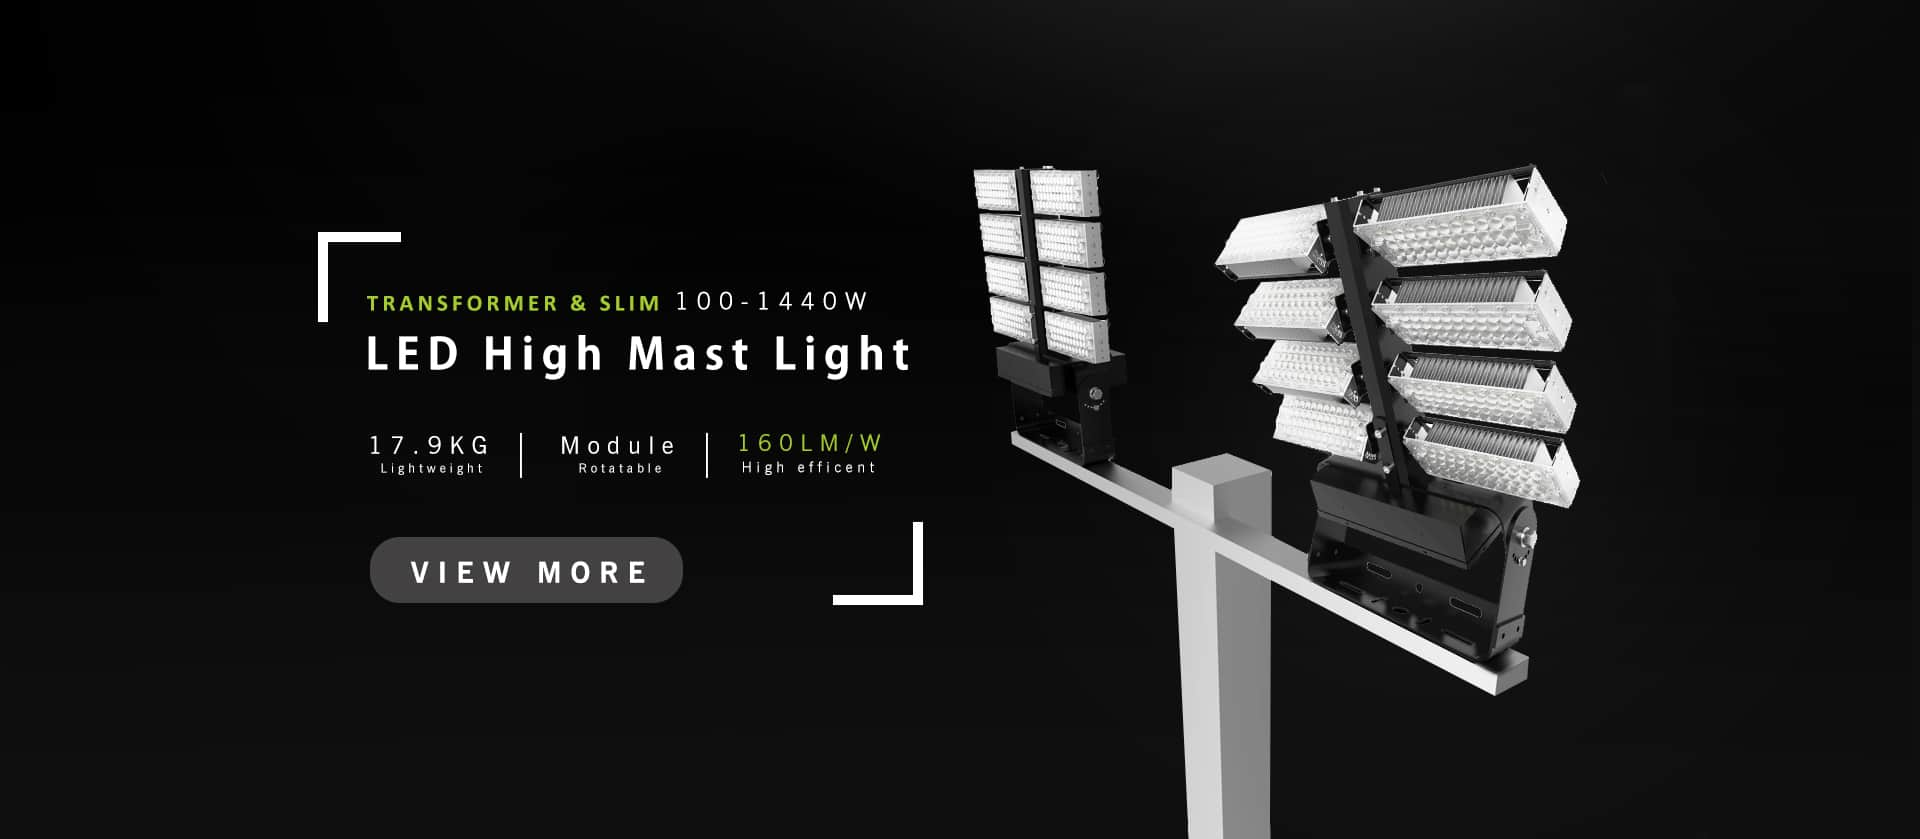 led high mast light 100w to 1440w